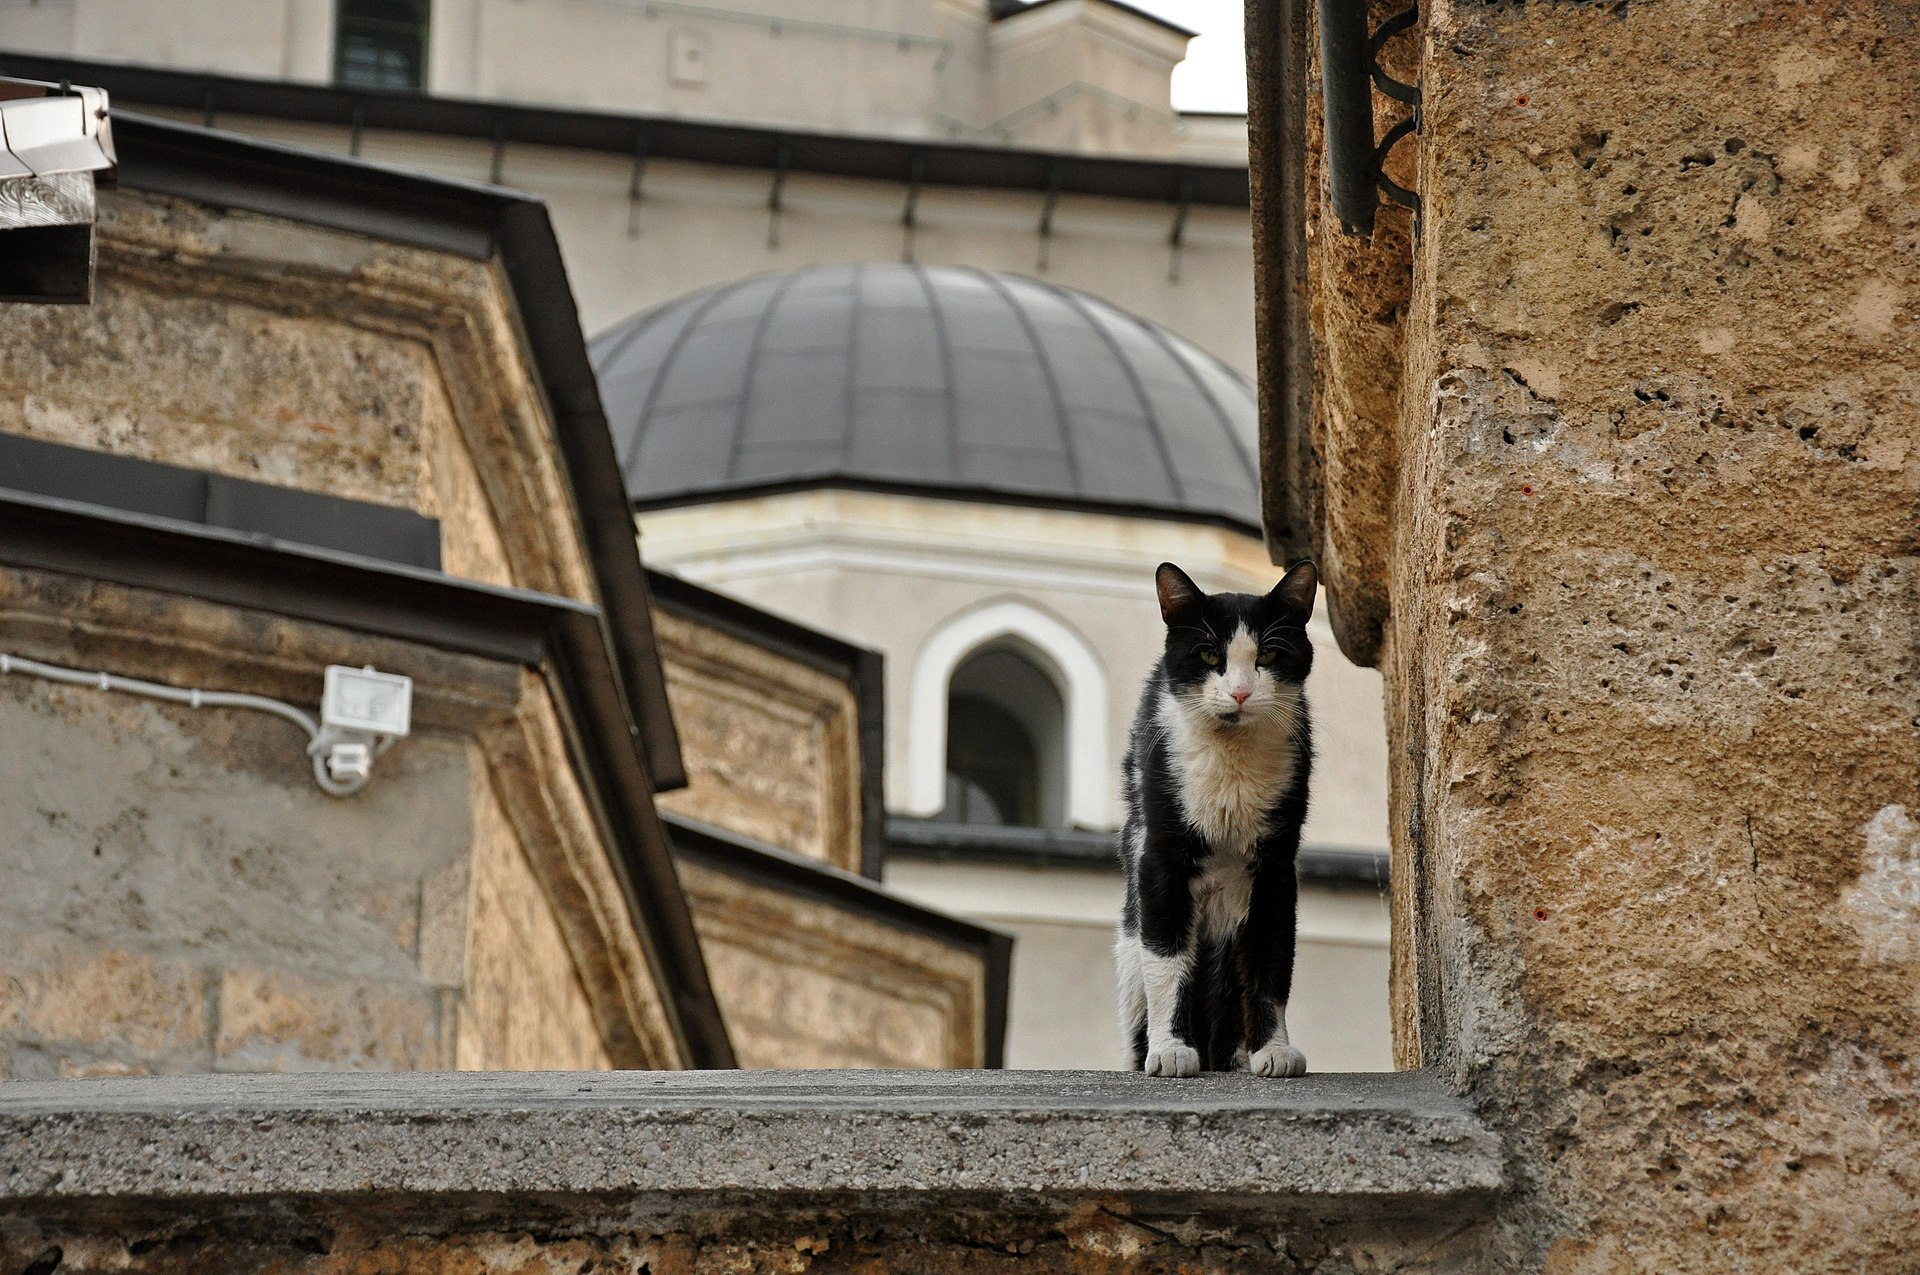 The Prophet Muhammad's (saw)favourite cat Muezza